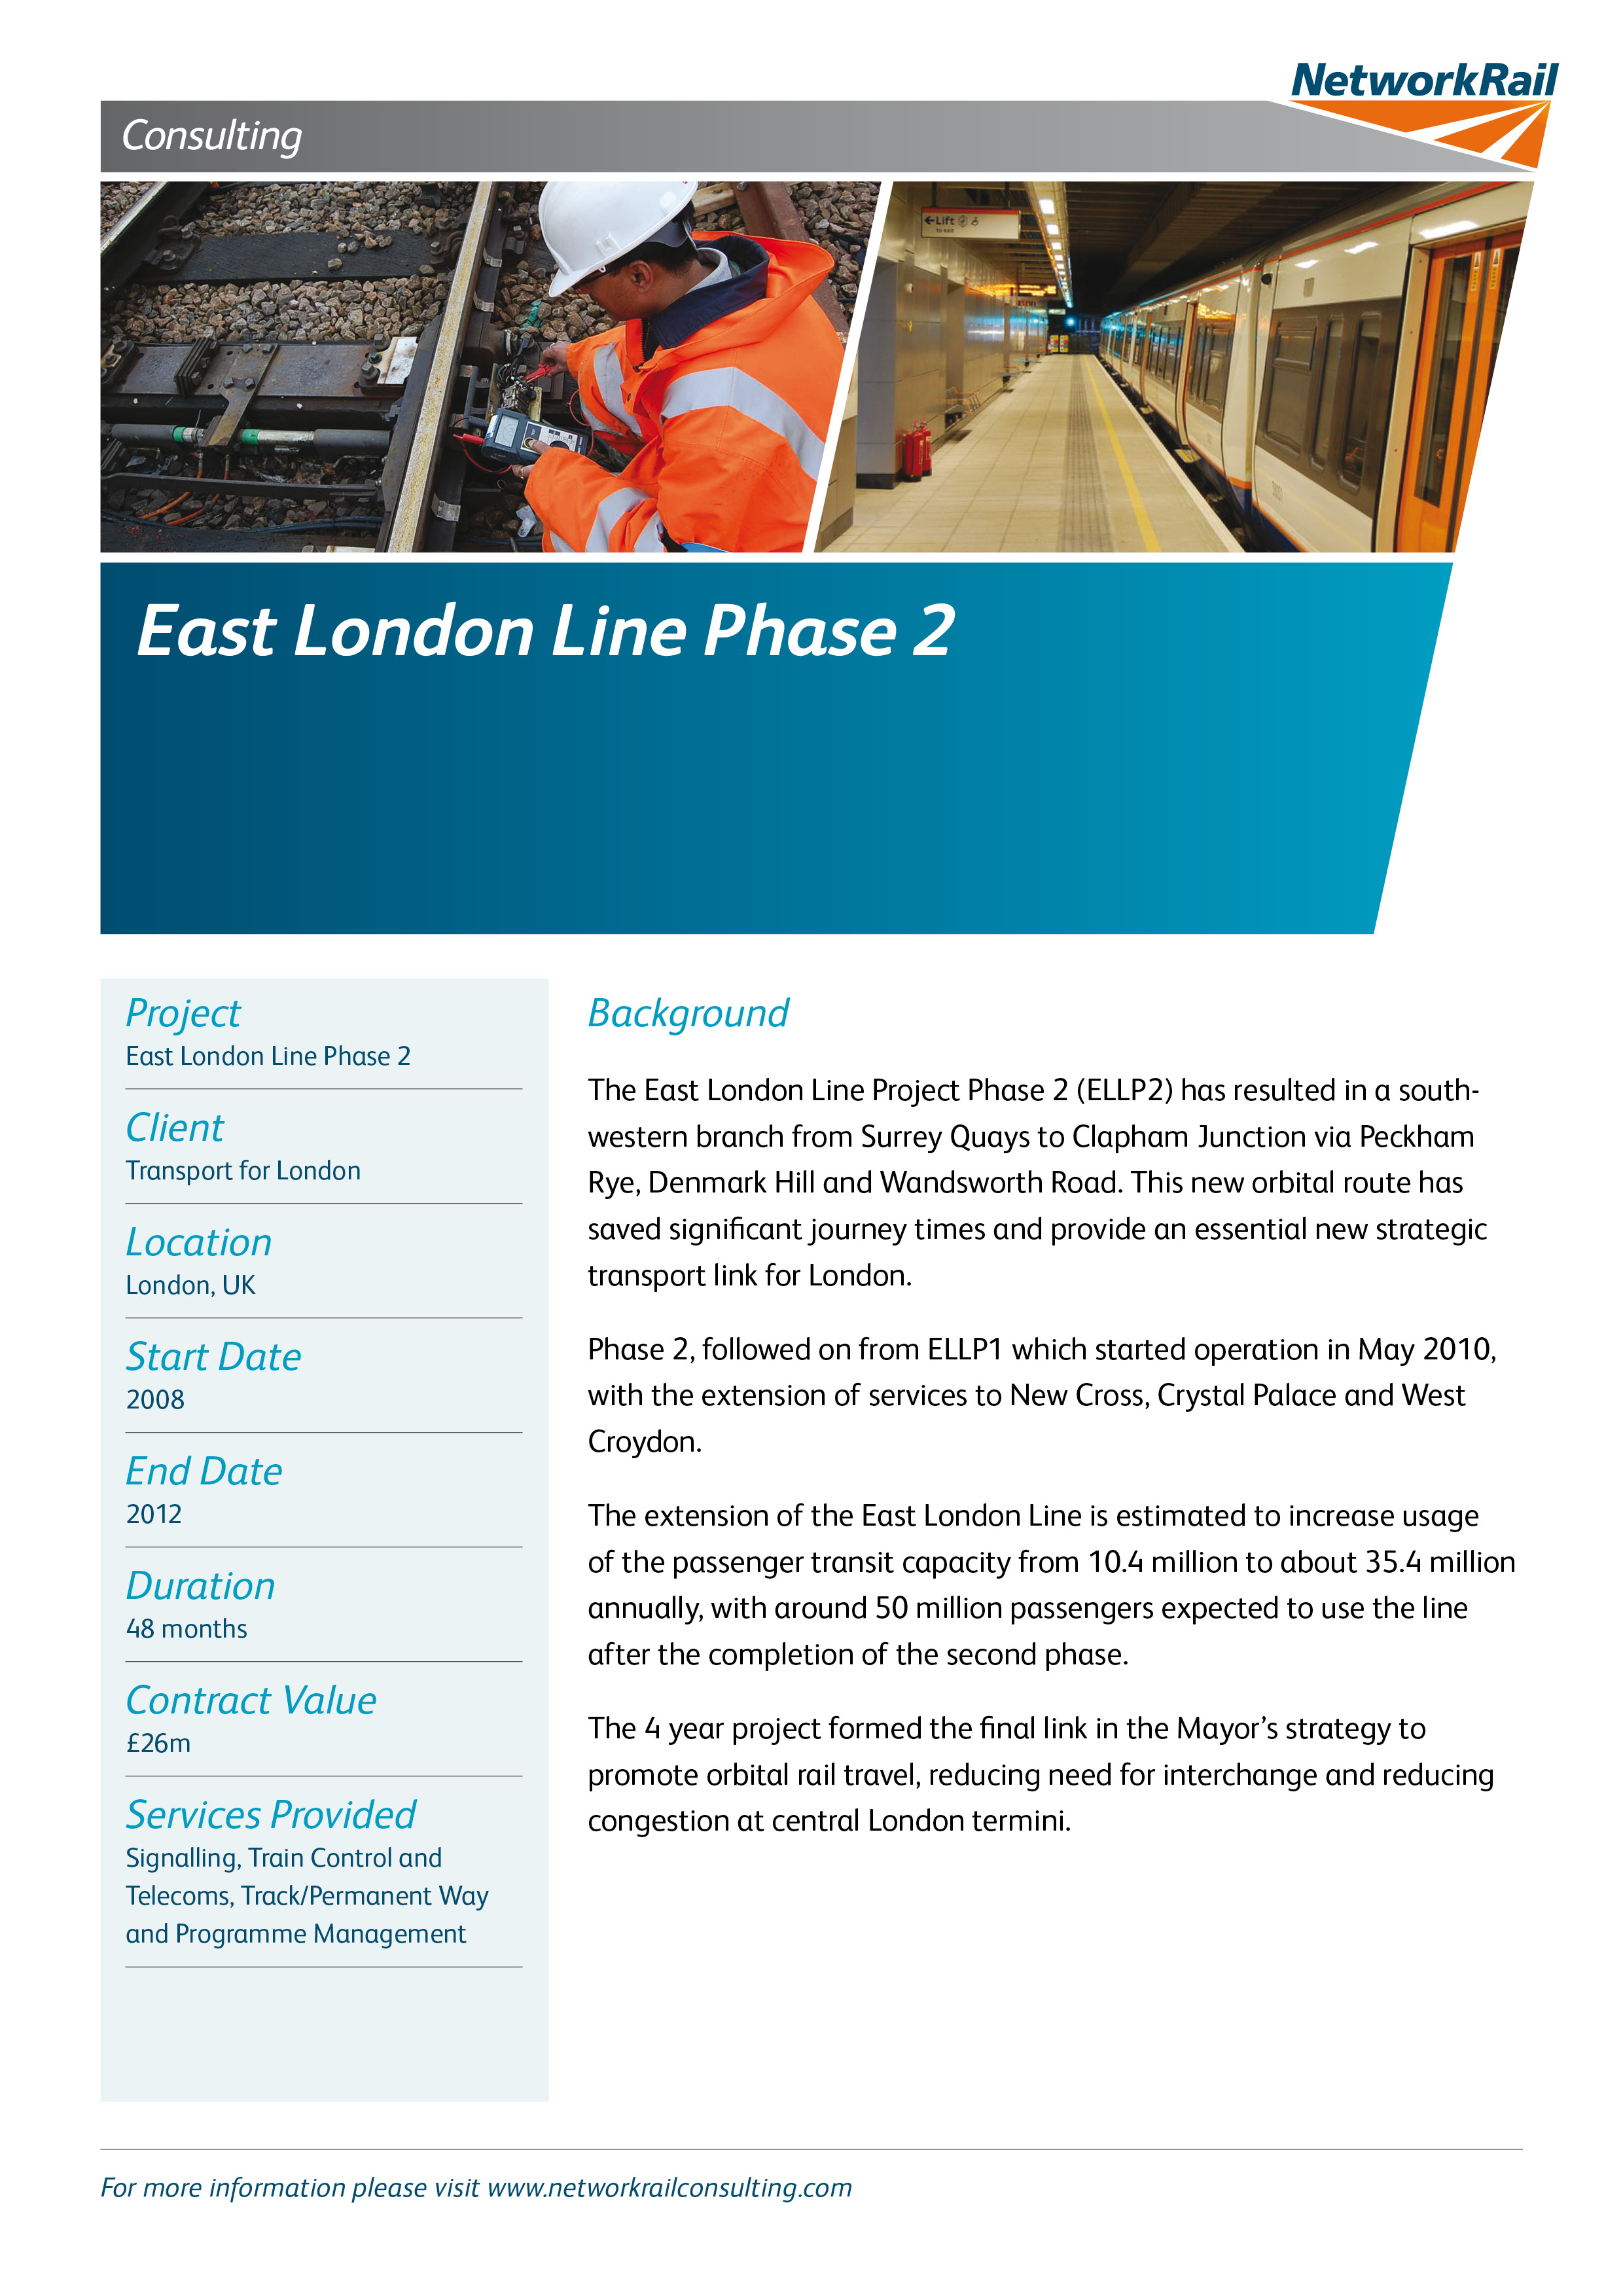 East London Line Phase 2